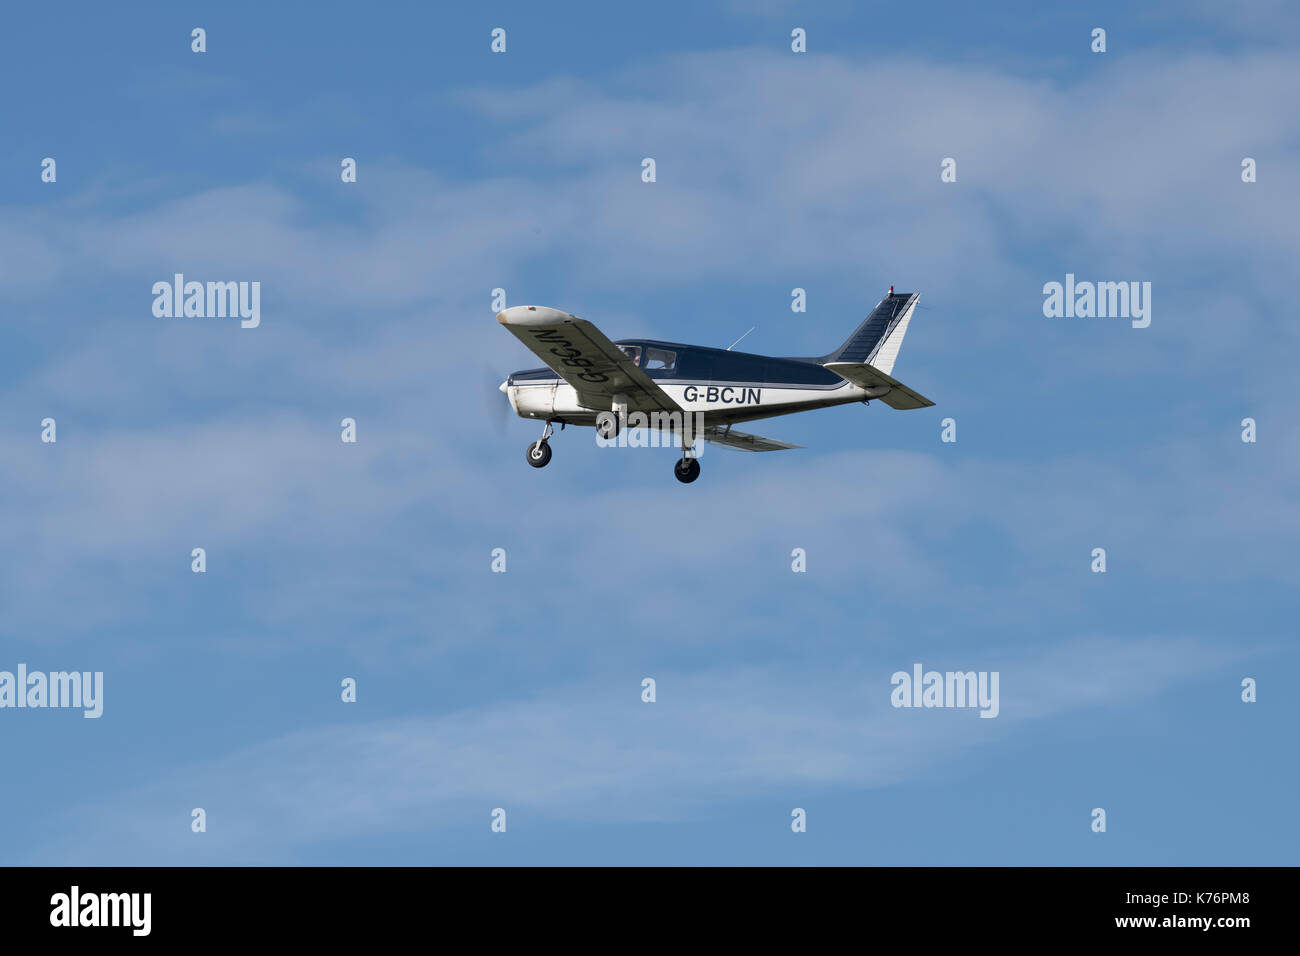 Piper PA28 takes off from Bristol Airport - Stock Image